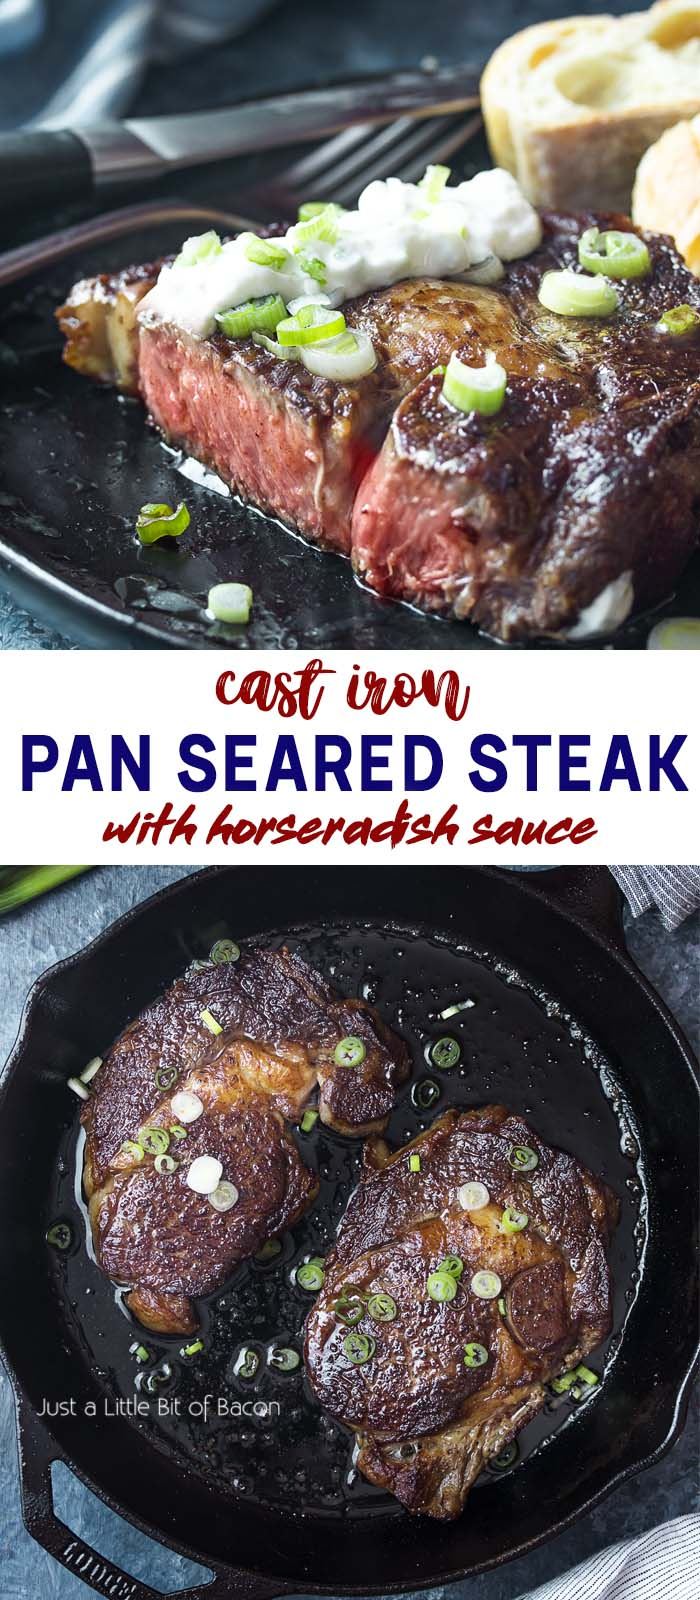 Steaks in skillet and on plate with text overlay - Pan Seared Steak.